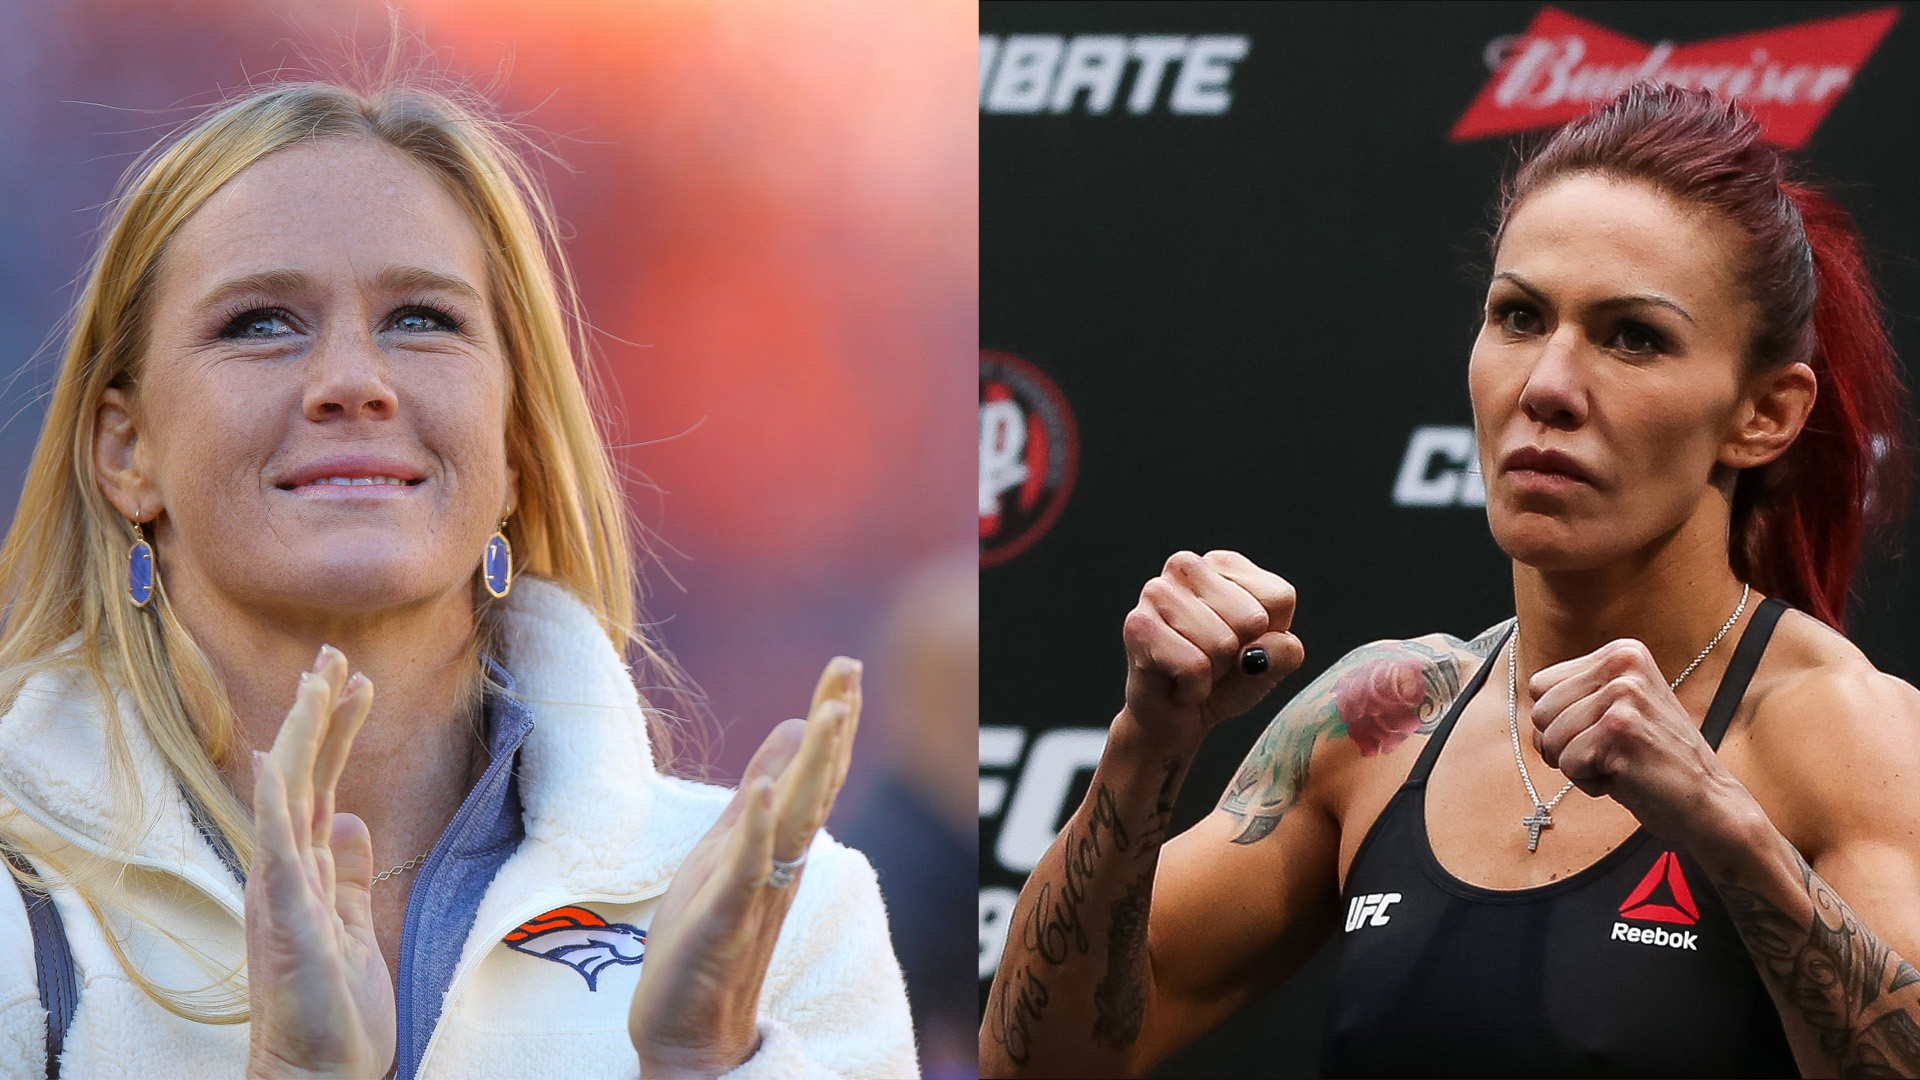 Cris Cyborg vs. Holly Holm Set For UFC 219